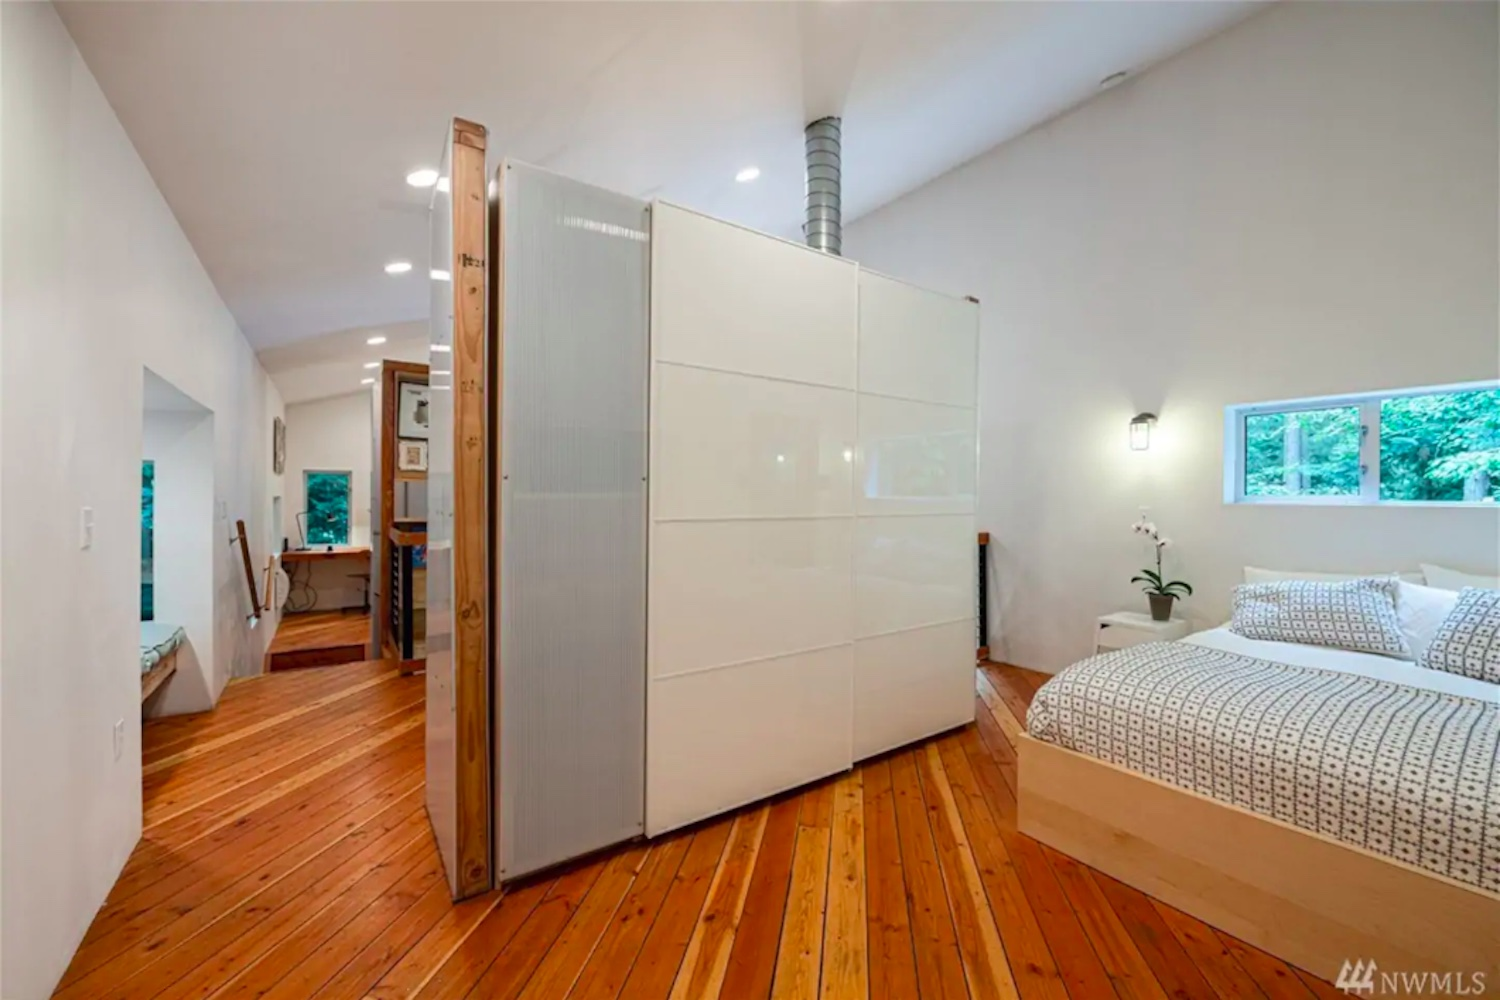 coolest airbnbs